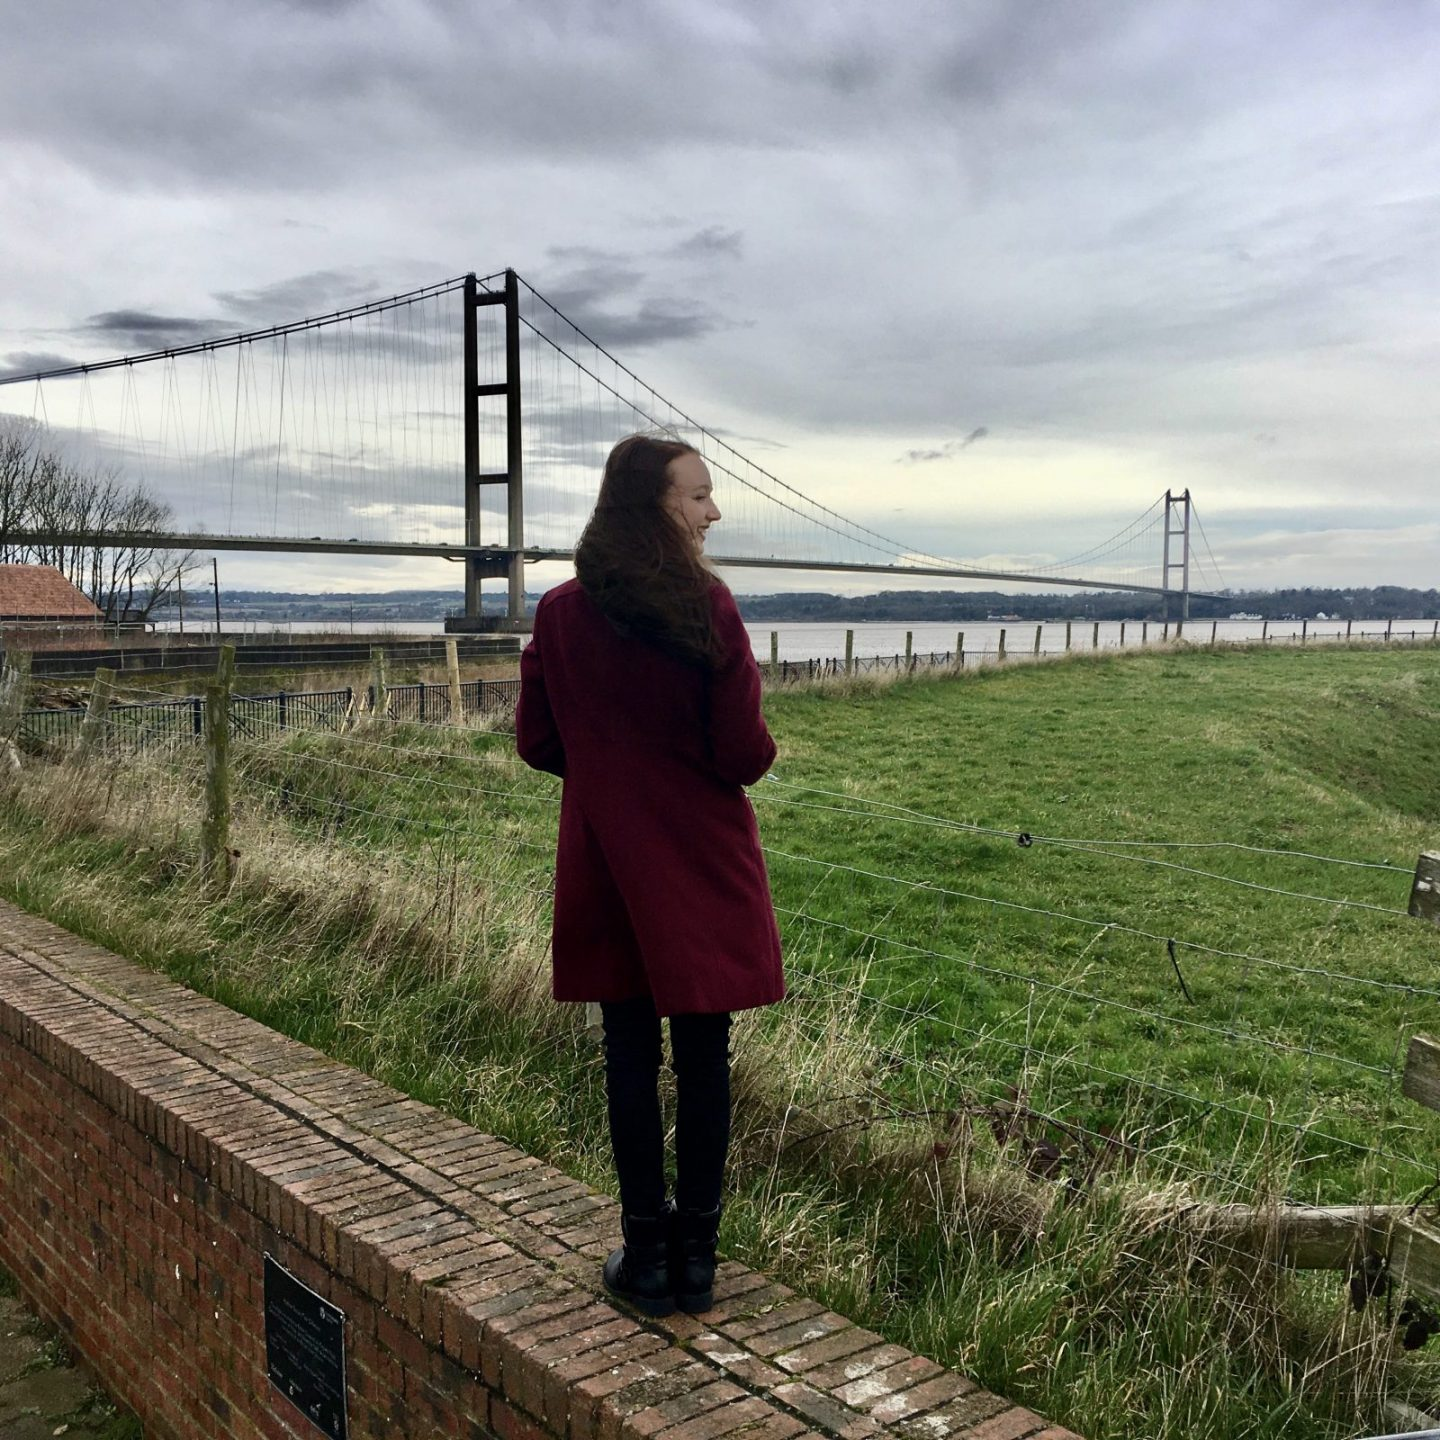 pippa stood on wall outdoors, back to camera and looking at the humber bridge in the distance. pippa is wearing a long burgandy coat with black jeans and boots